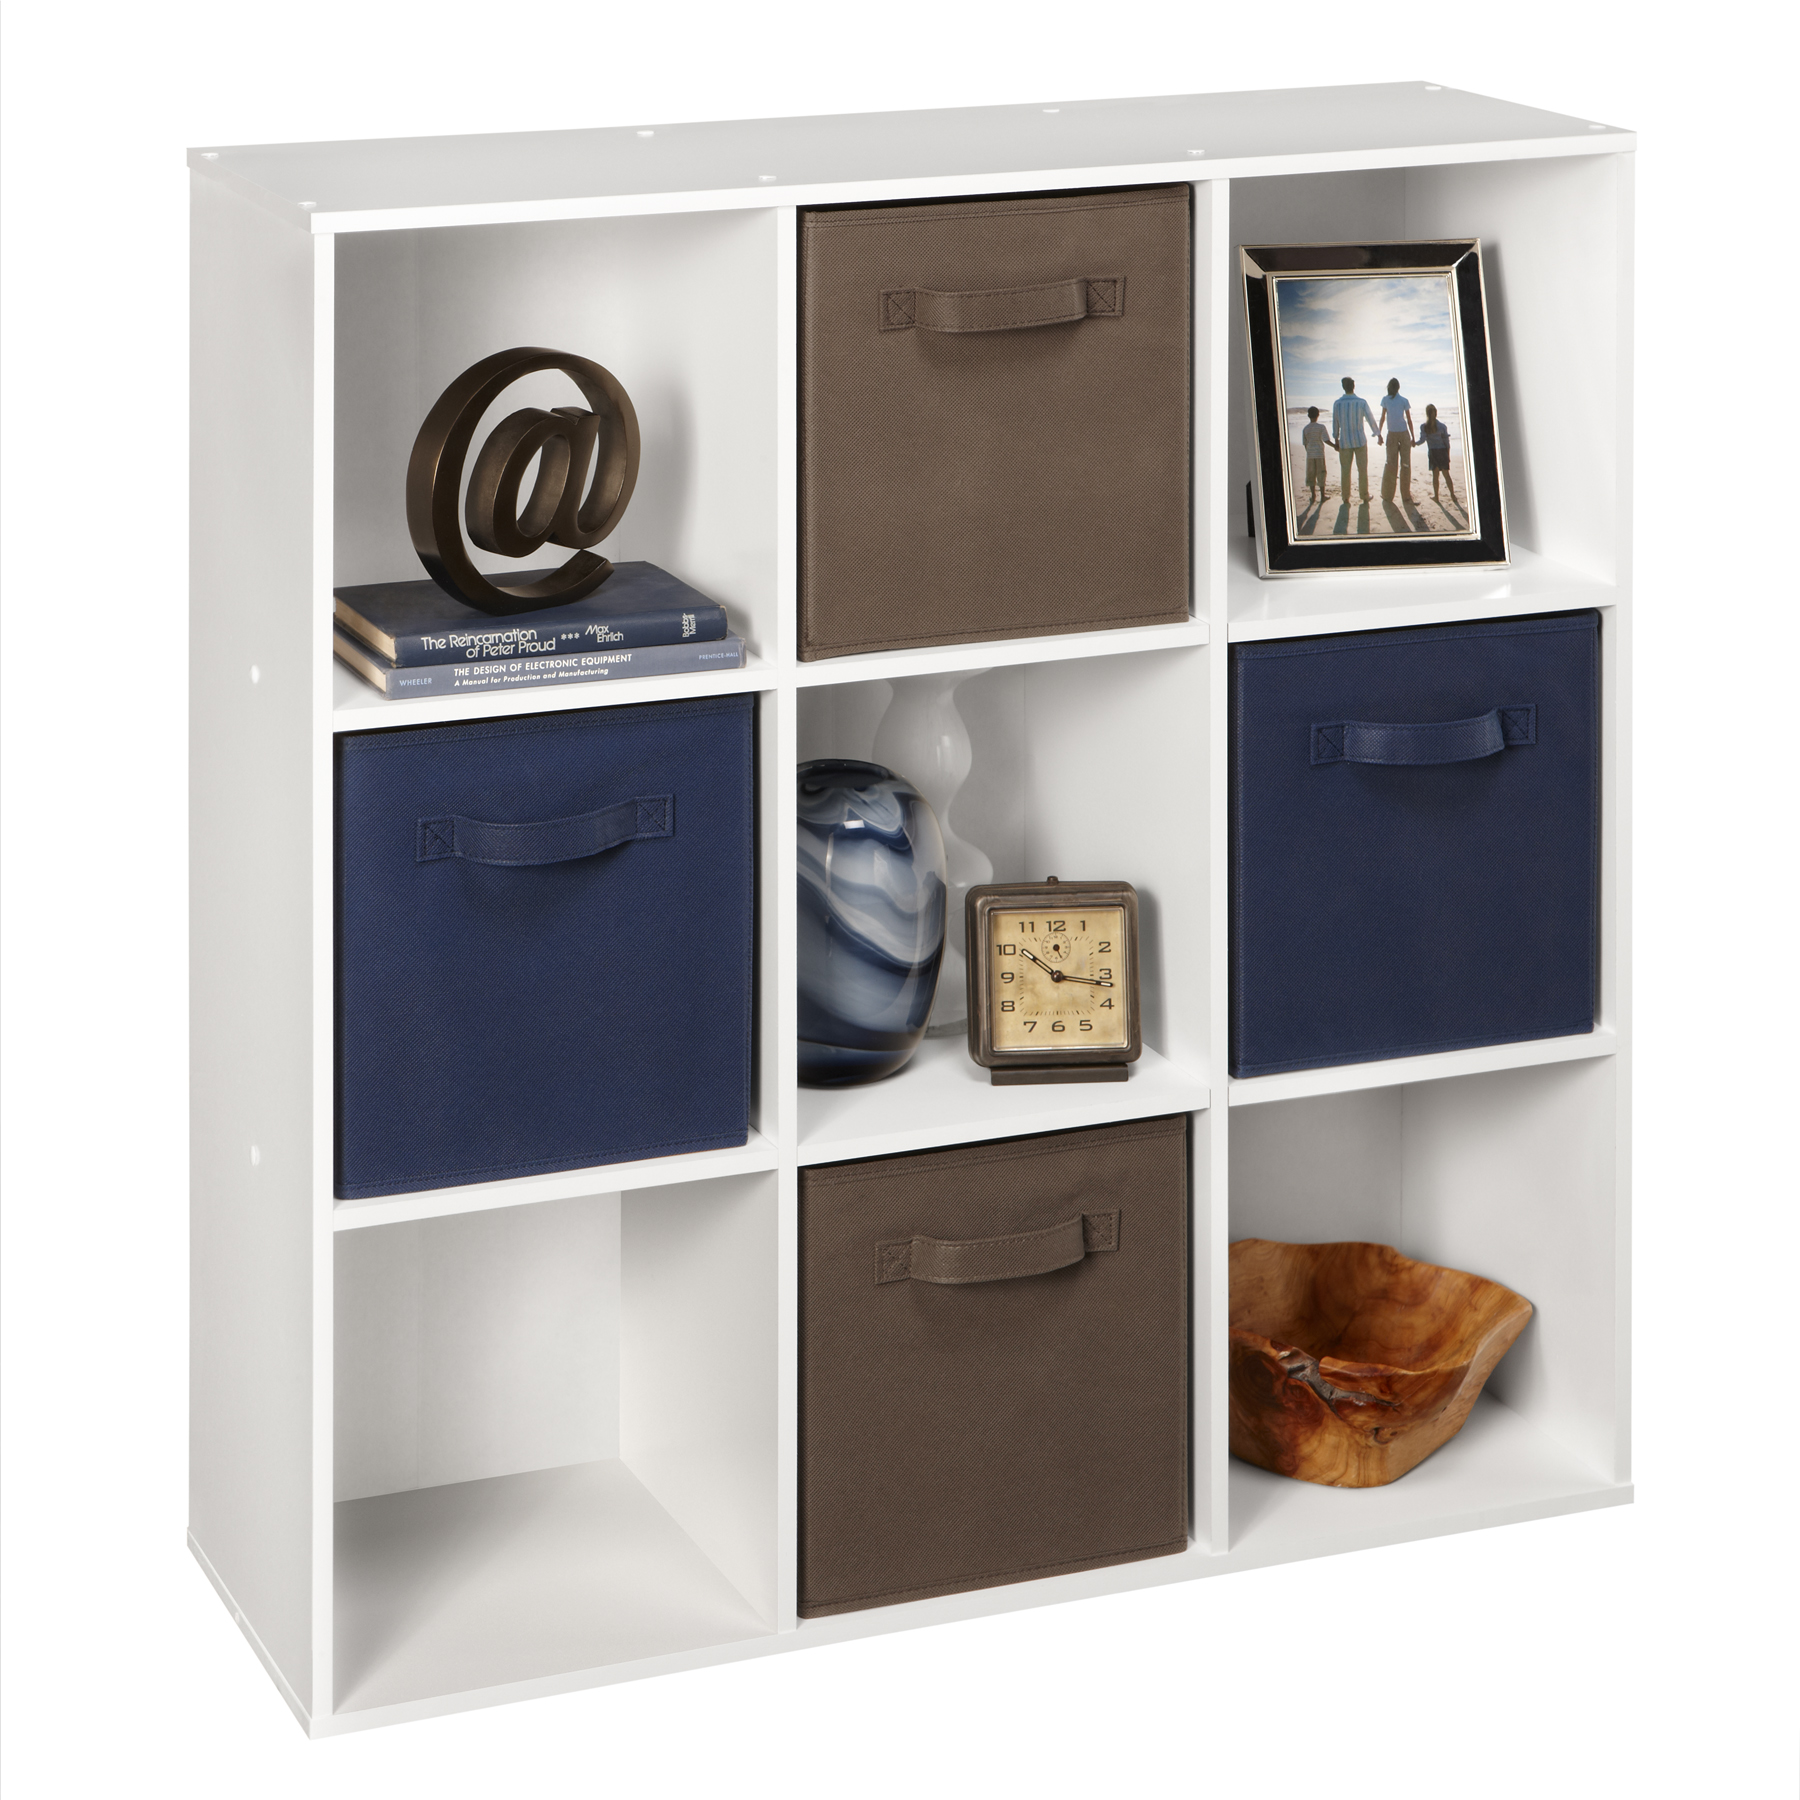 ClosetMaid Cubeicals 9 Cube Organizer